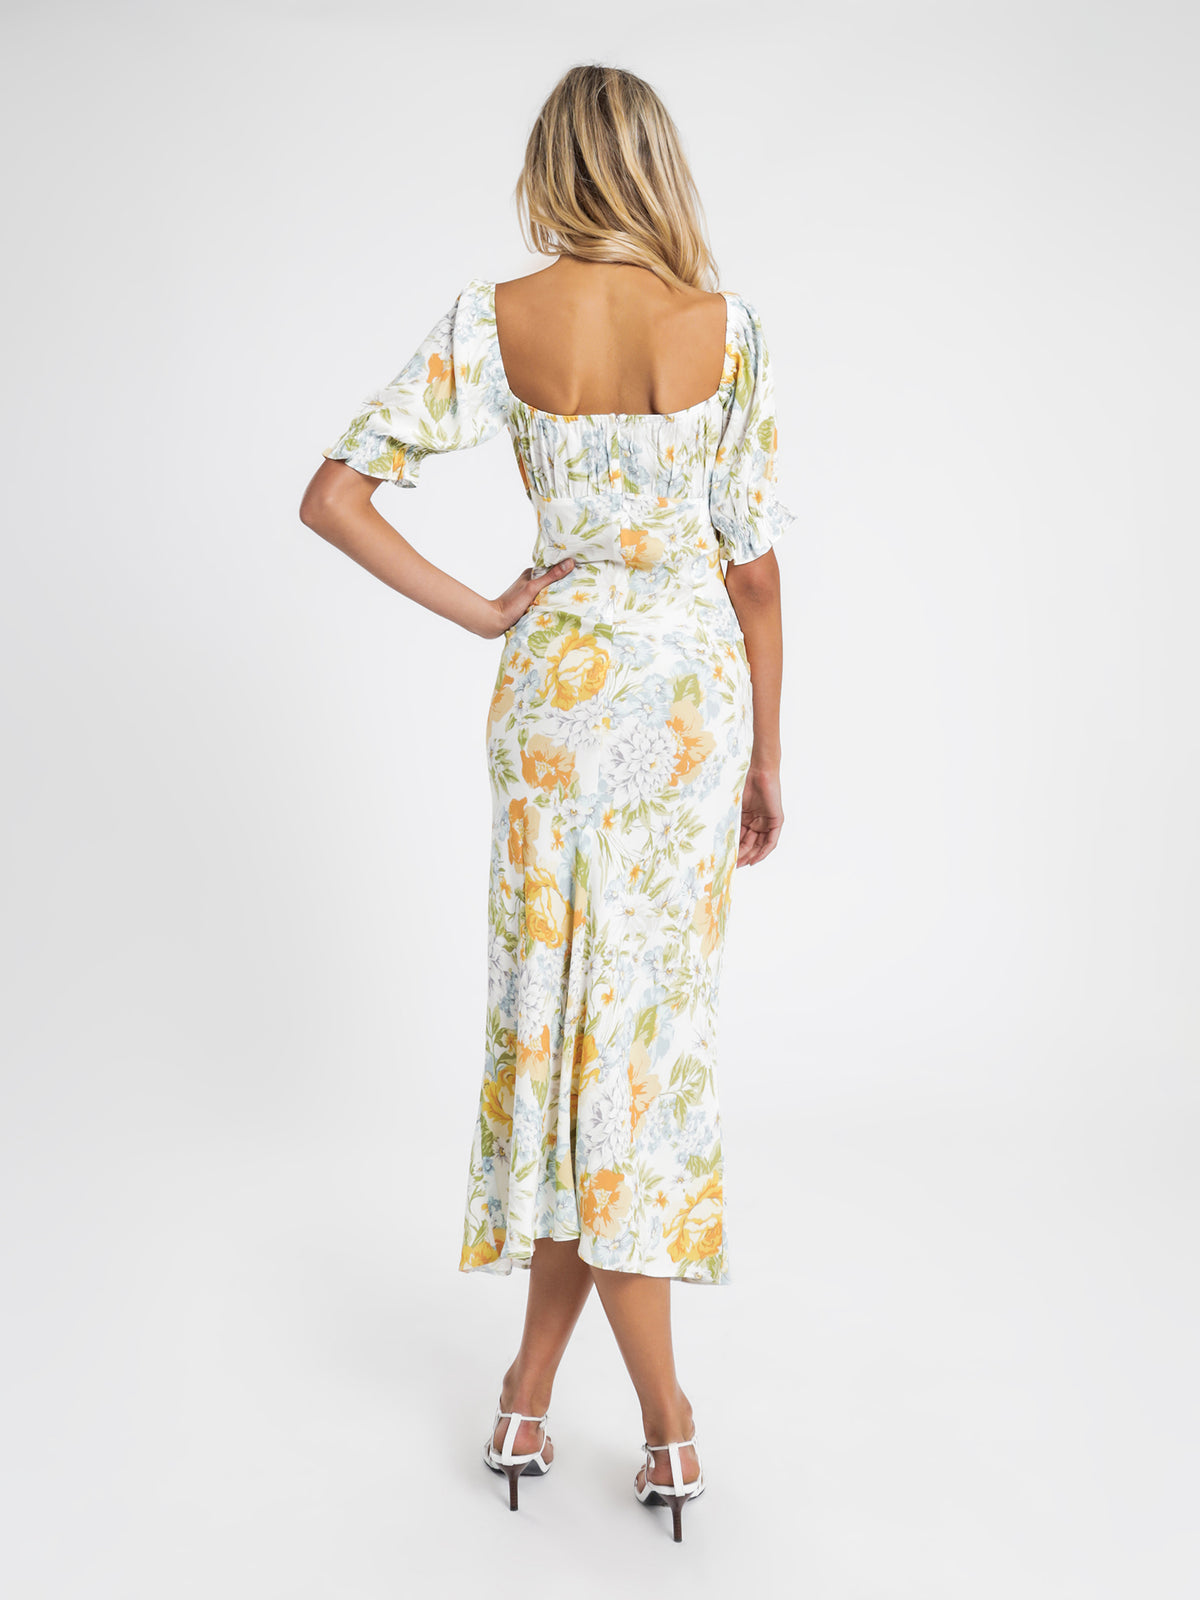 Corinne Midi Dress in Valencia Print